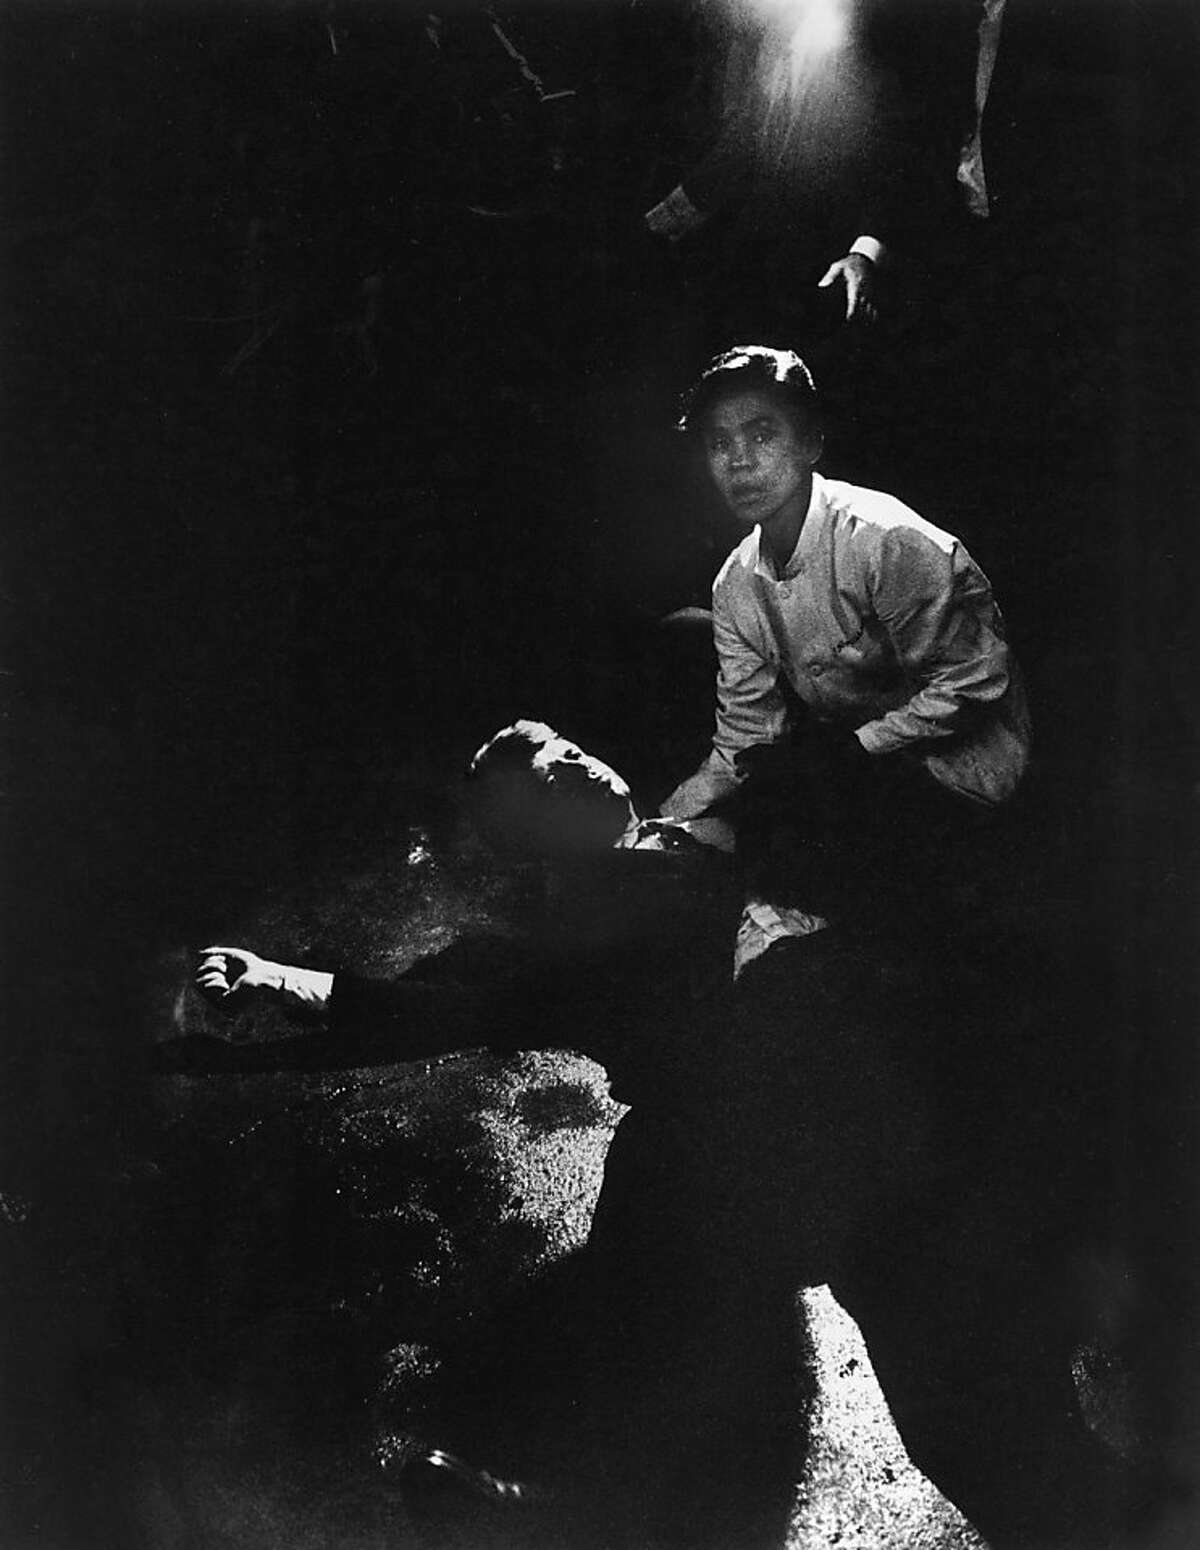 CALIFORNIA, UNITED STATES - JUNE 05: Senator Robert Kennedy sprawled semiconscious in his own blood on floor after being shot in the brain & neck while busboy Juan Romero tries to comfort him, in kitchen at hotel. NOTE: PRINT DAMAGED IN CIRCULATION PRIOR TO 2/10/1998. (Photo by Bill Eppridge/Time & Life Pictures/Getty Images)